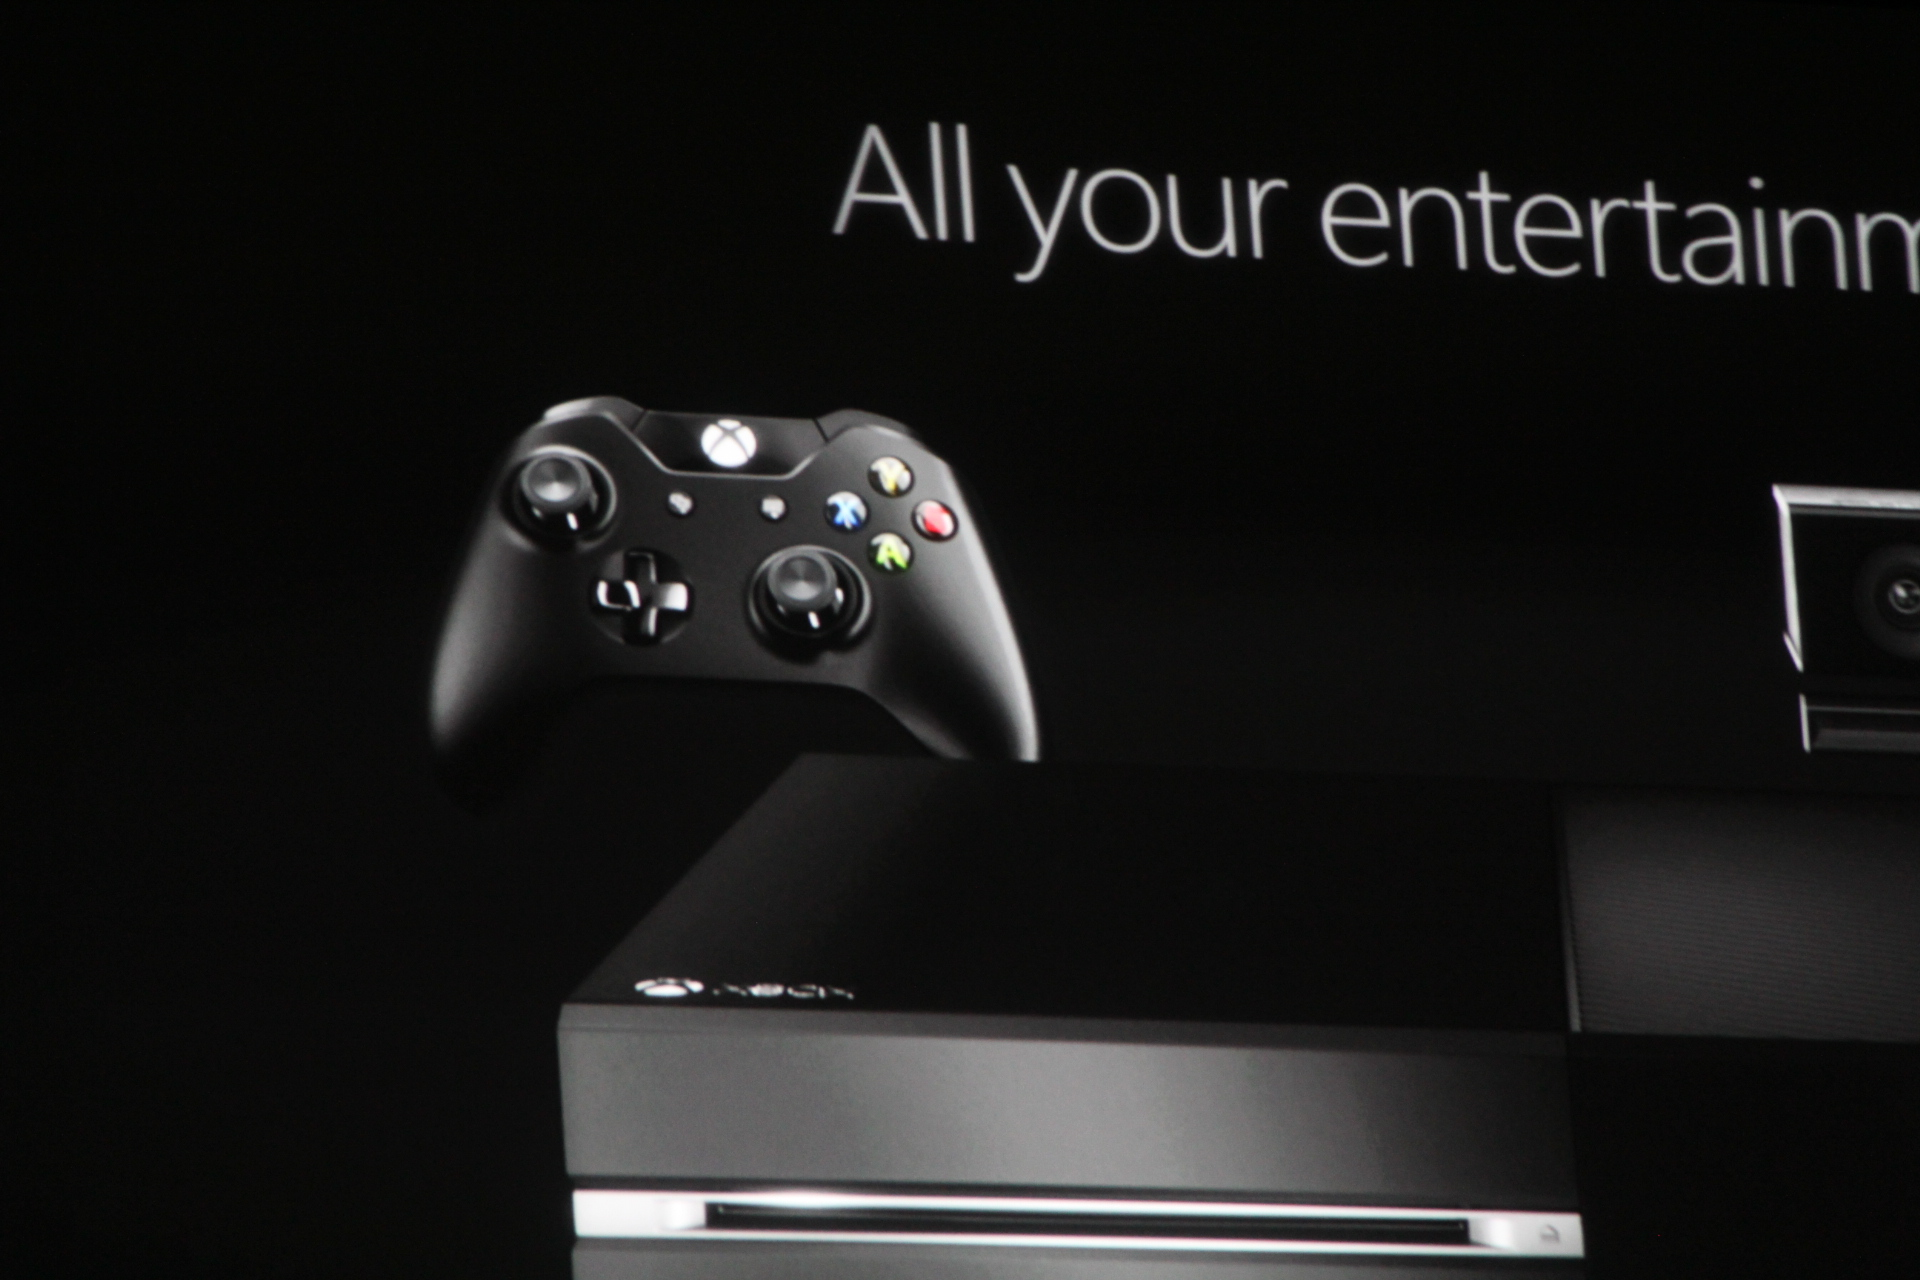 0018 Microsoft introduces new controller for Xbox One console with redesigned d pad